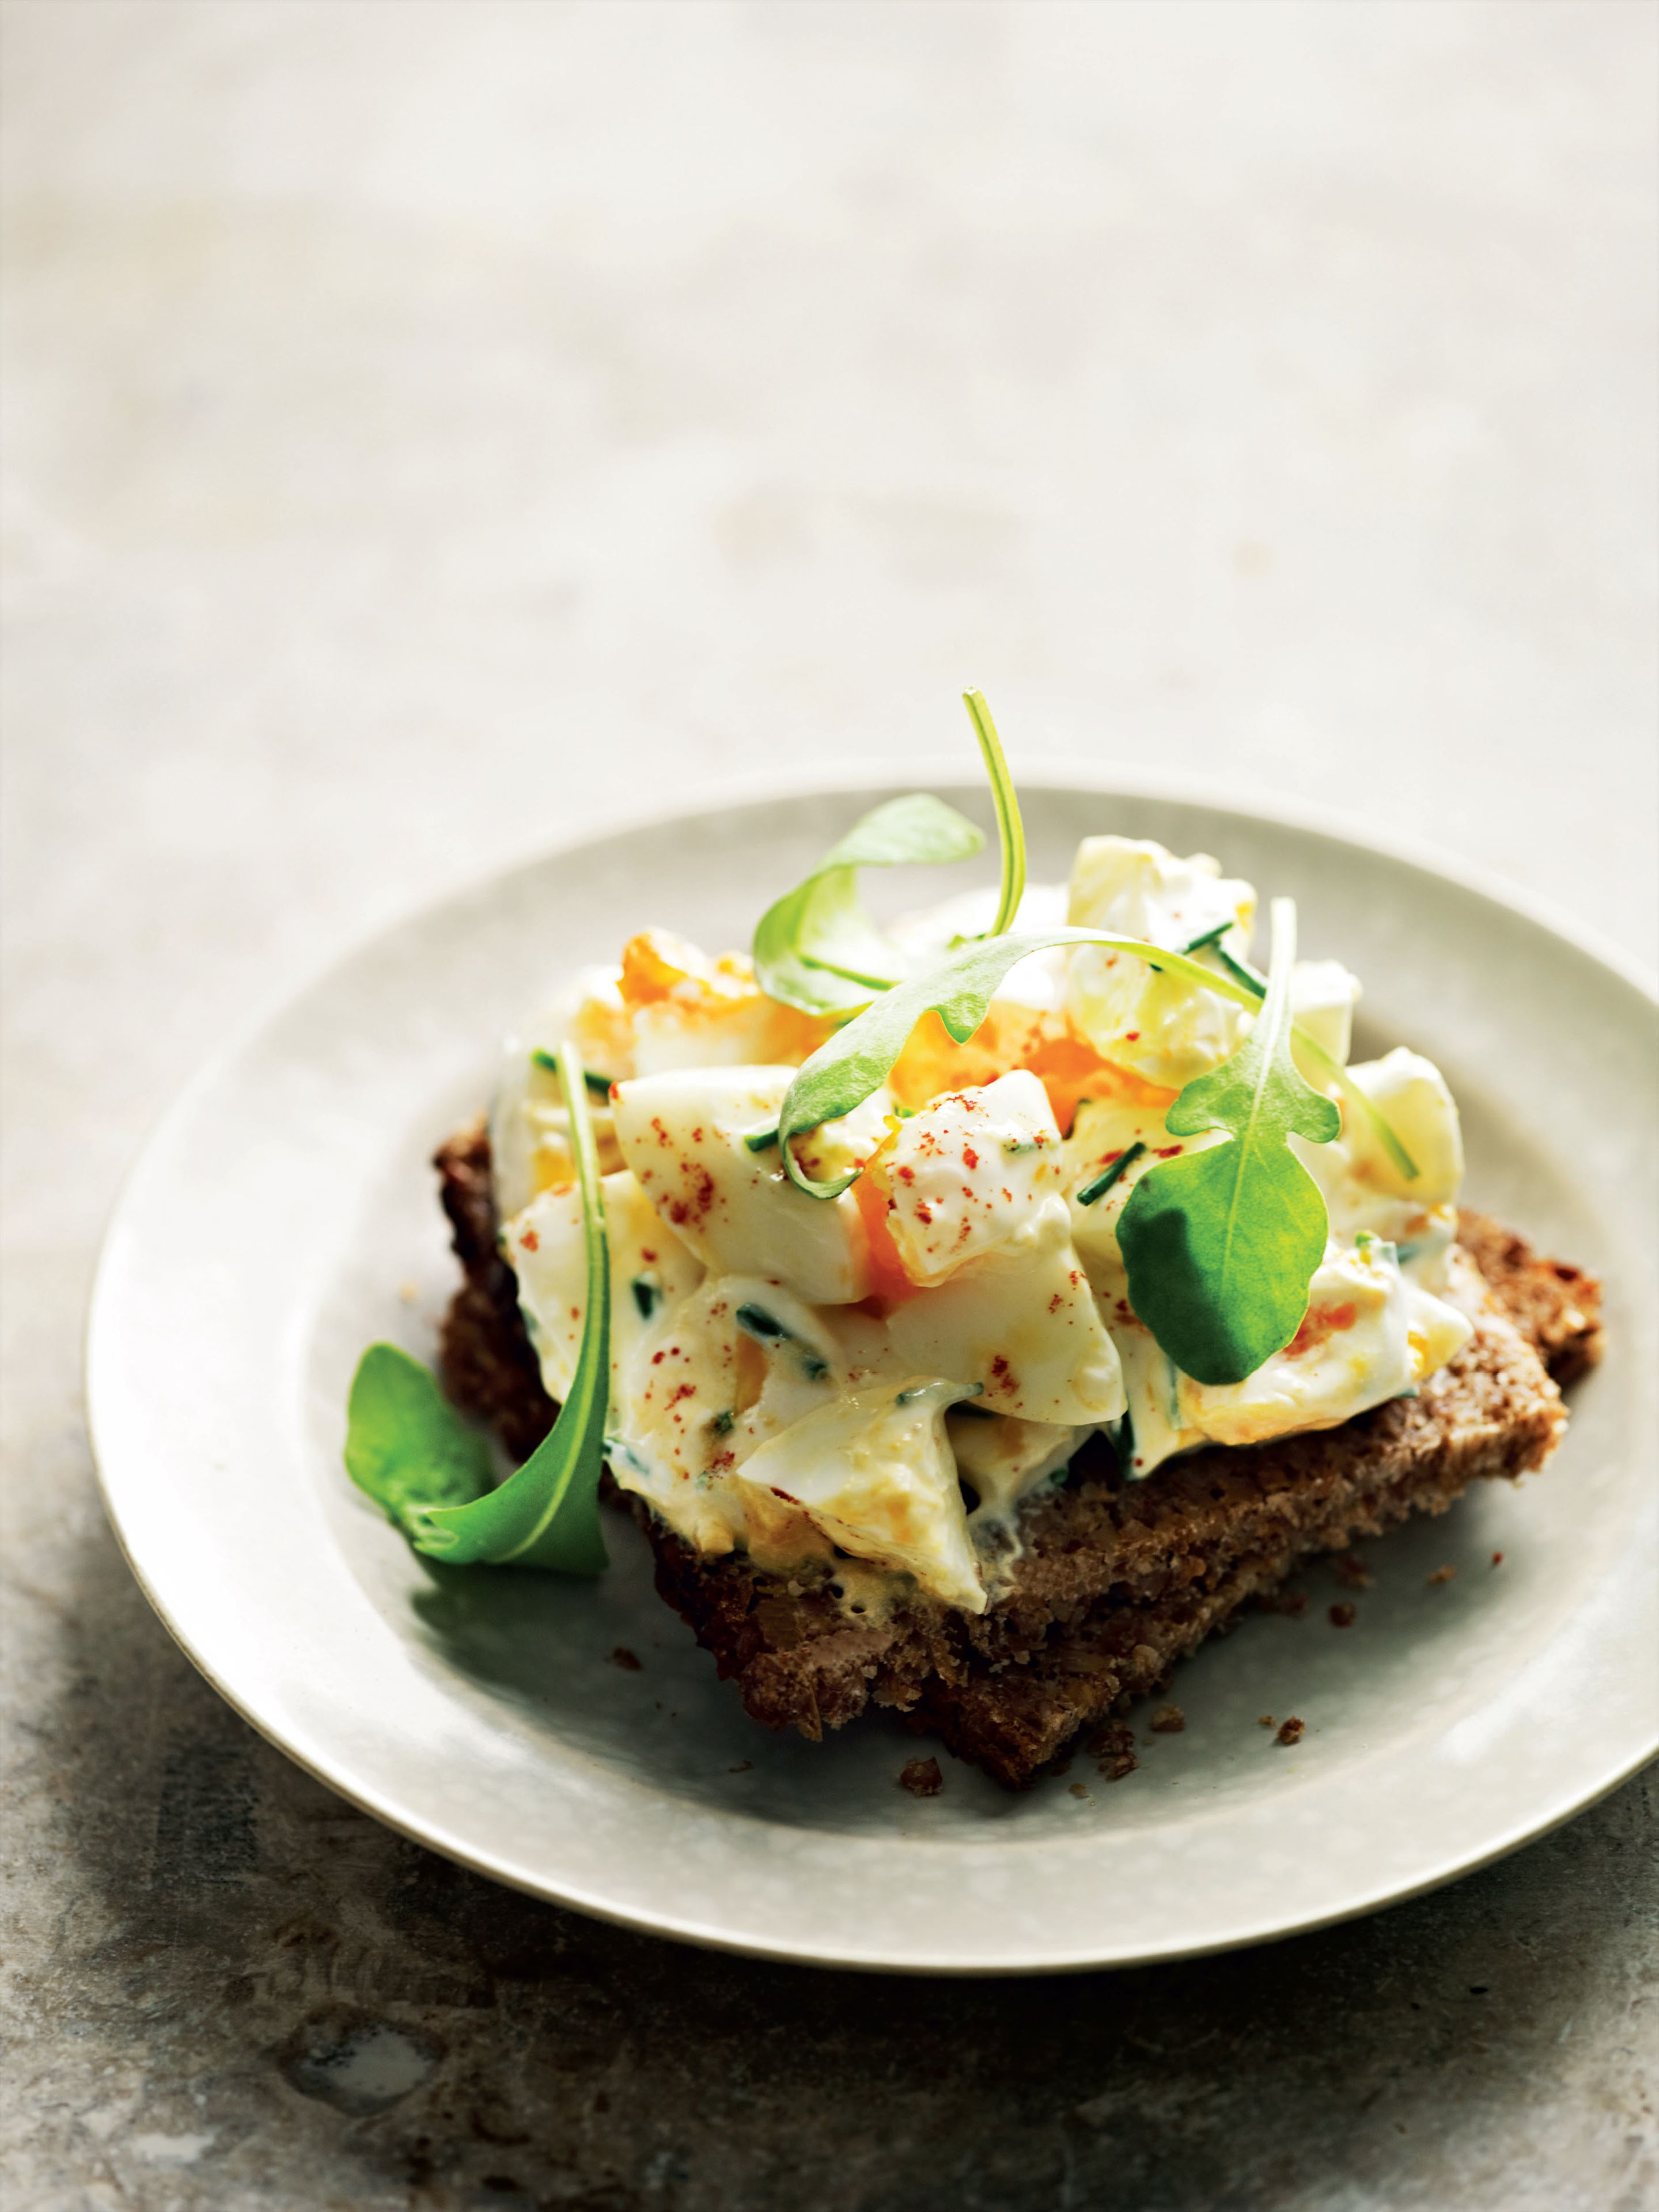 Creamy egg and rye decker with wild rocket